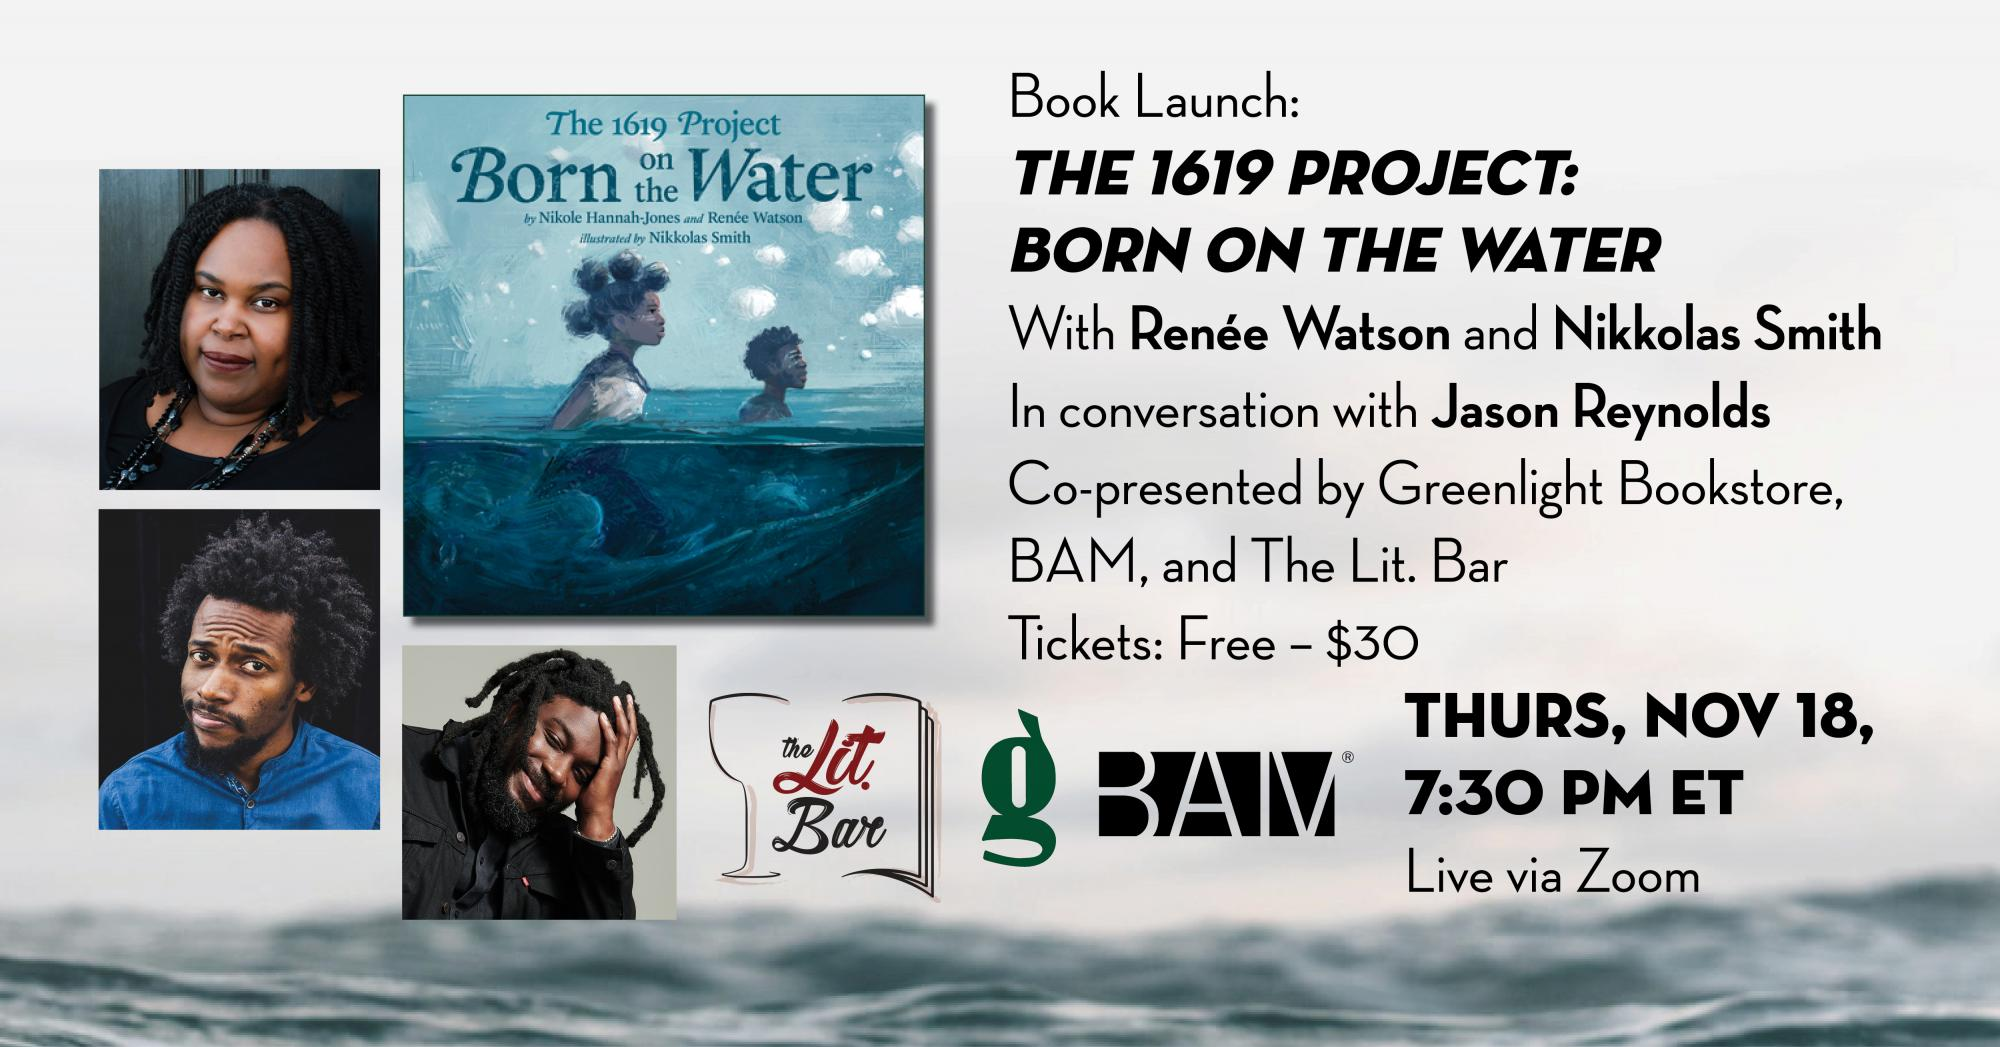 Book Launch: The 1619 Project: Born On the Water with Renee Watson and Nicholas Smith in conversation with Jason Reynolds, November 18 live via Zoom